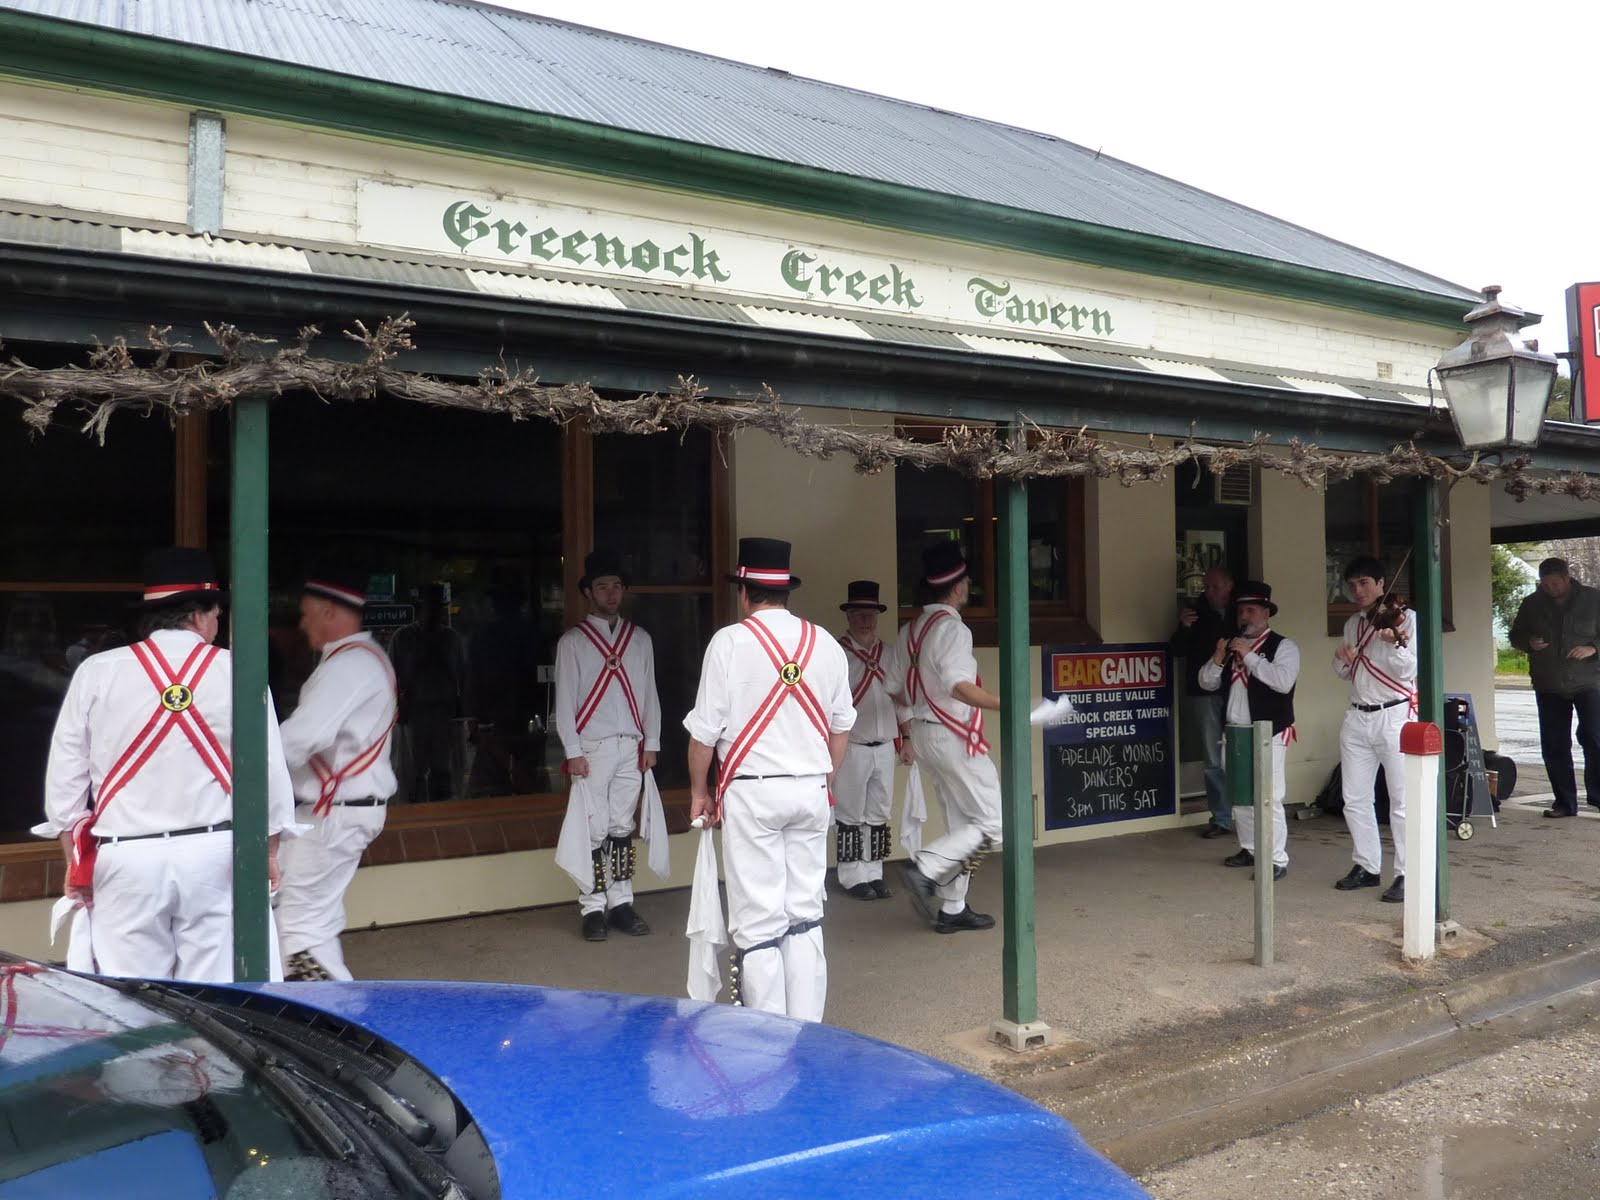 The Greenock Creek Tavern, Greenock